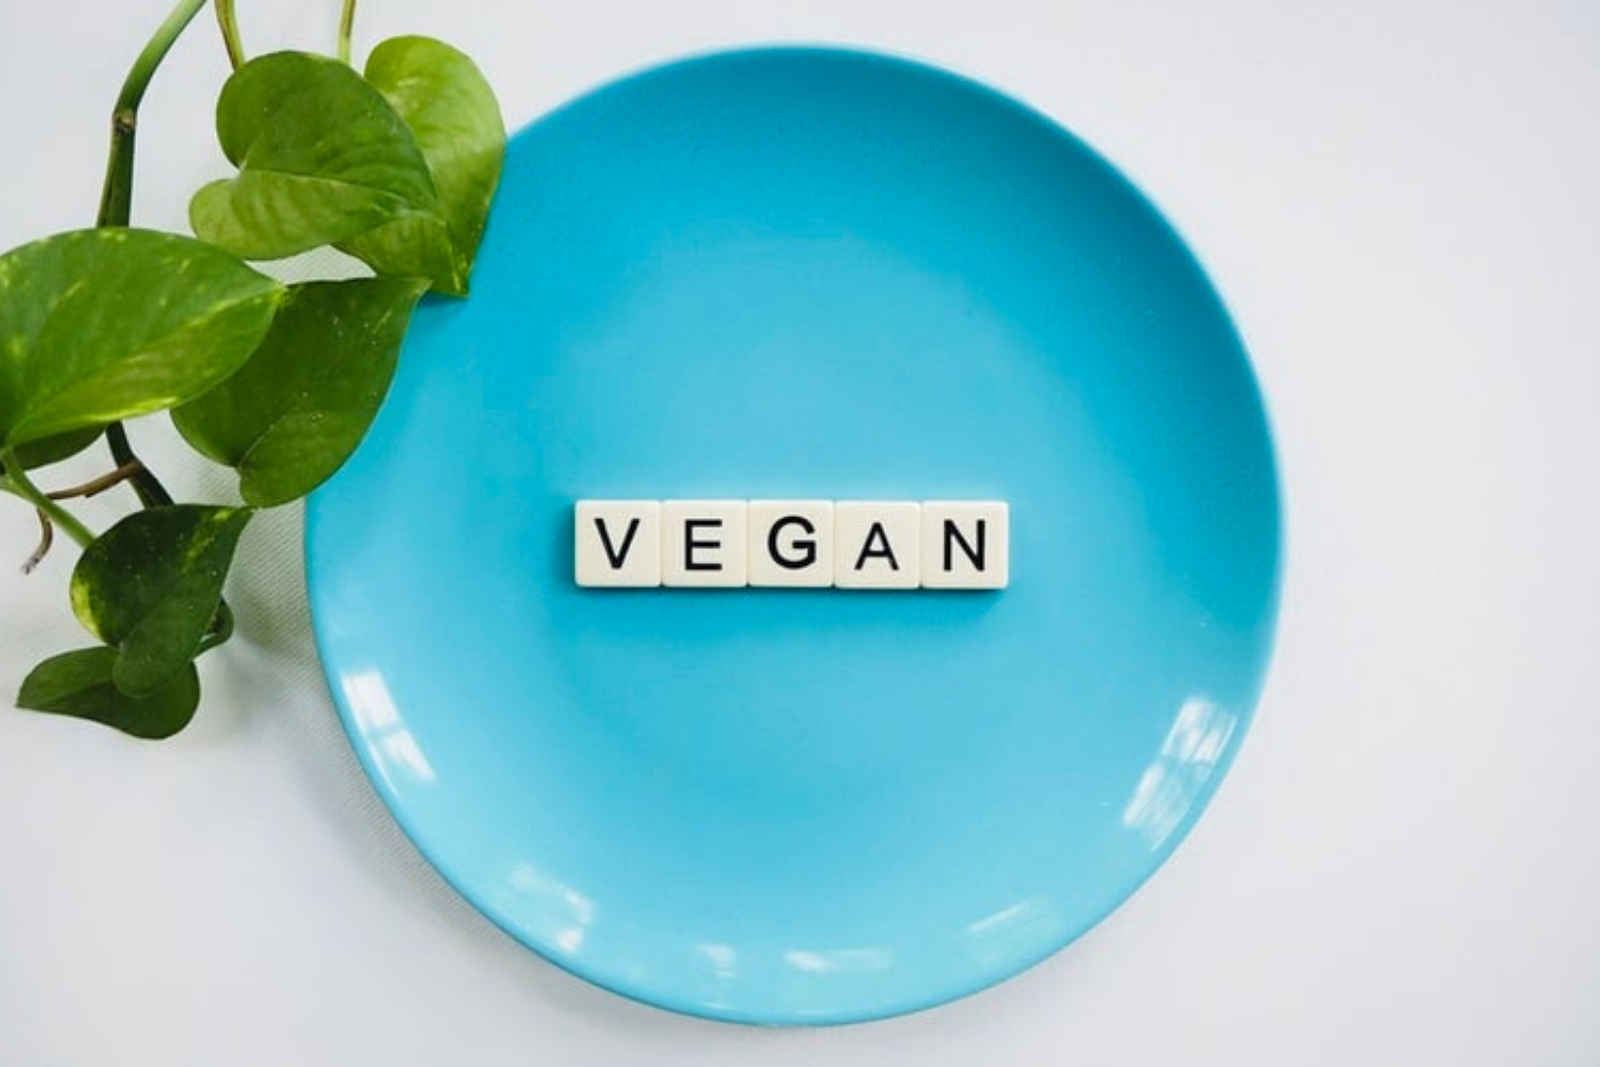 Vegan Plate   40 Famous Vegan Celebrities You Probably Don't Know About